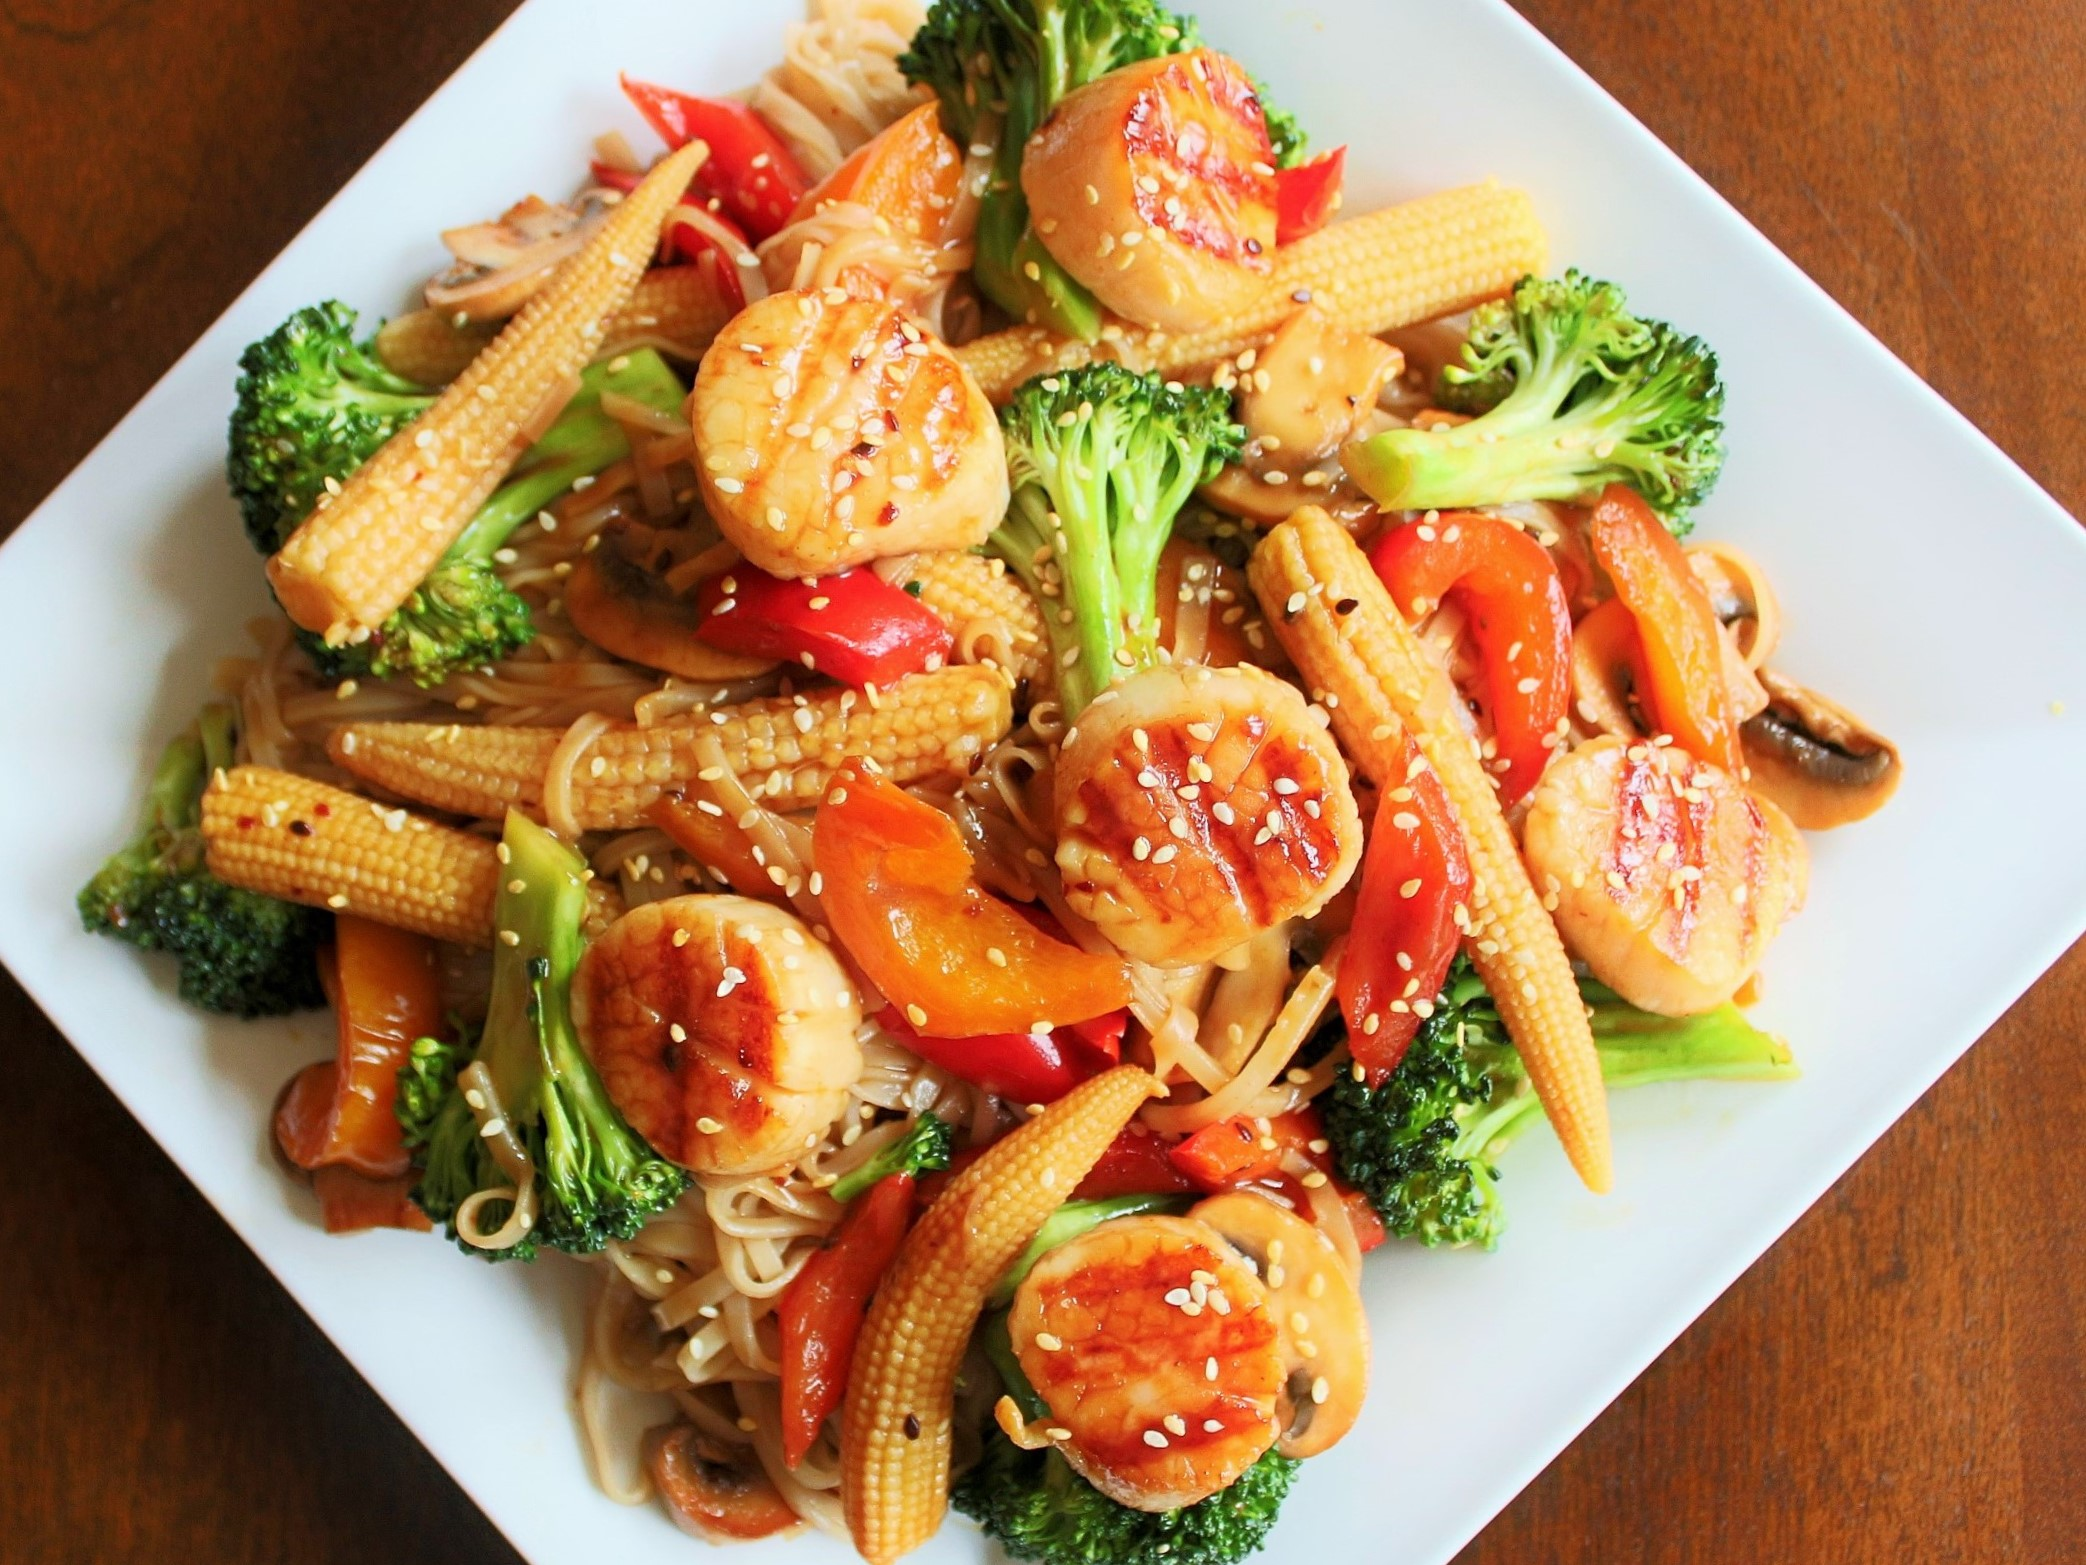 Grilled Scallops and Veggies in a Honey Ginger Sauce